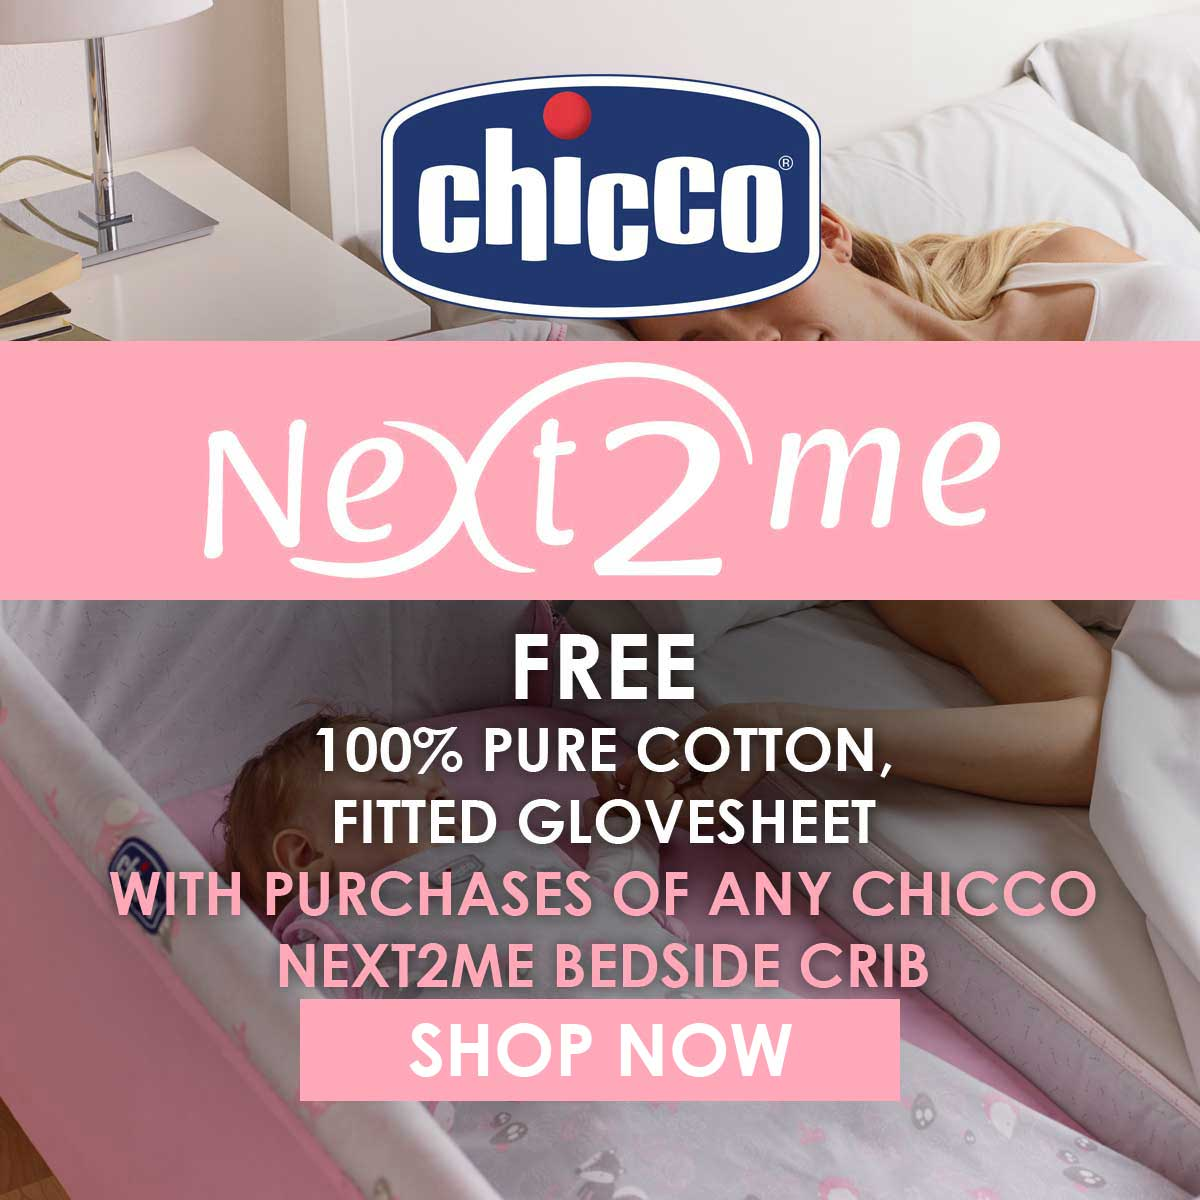 Chicco Next 2 Me Glovesheet